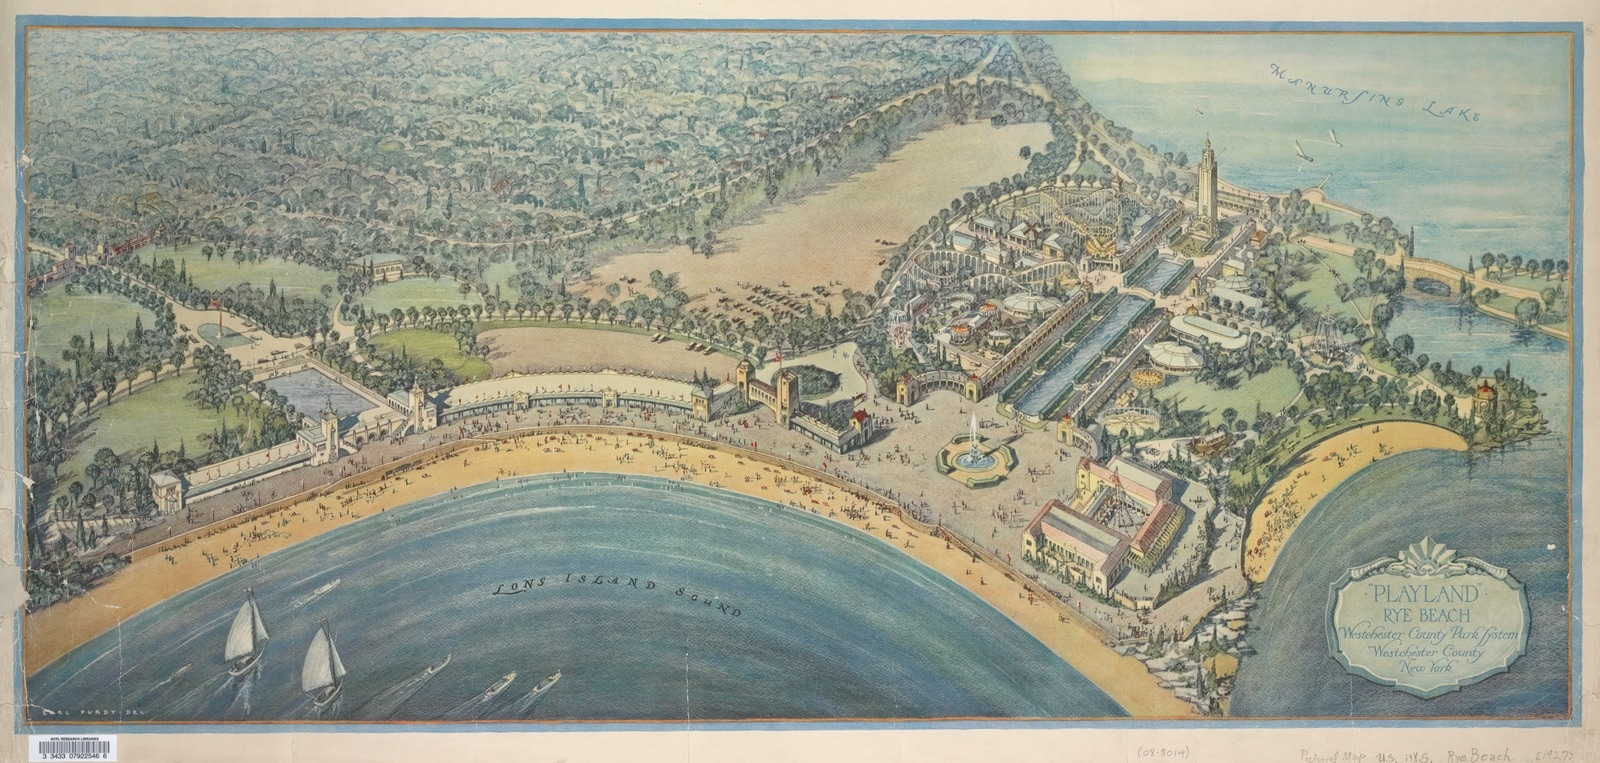 Playland, Rye Beach: Westchester County, New York. Maps of New York City and State collection, New York Public Library